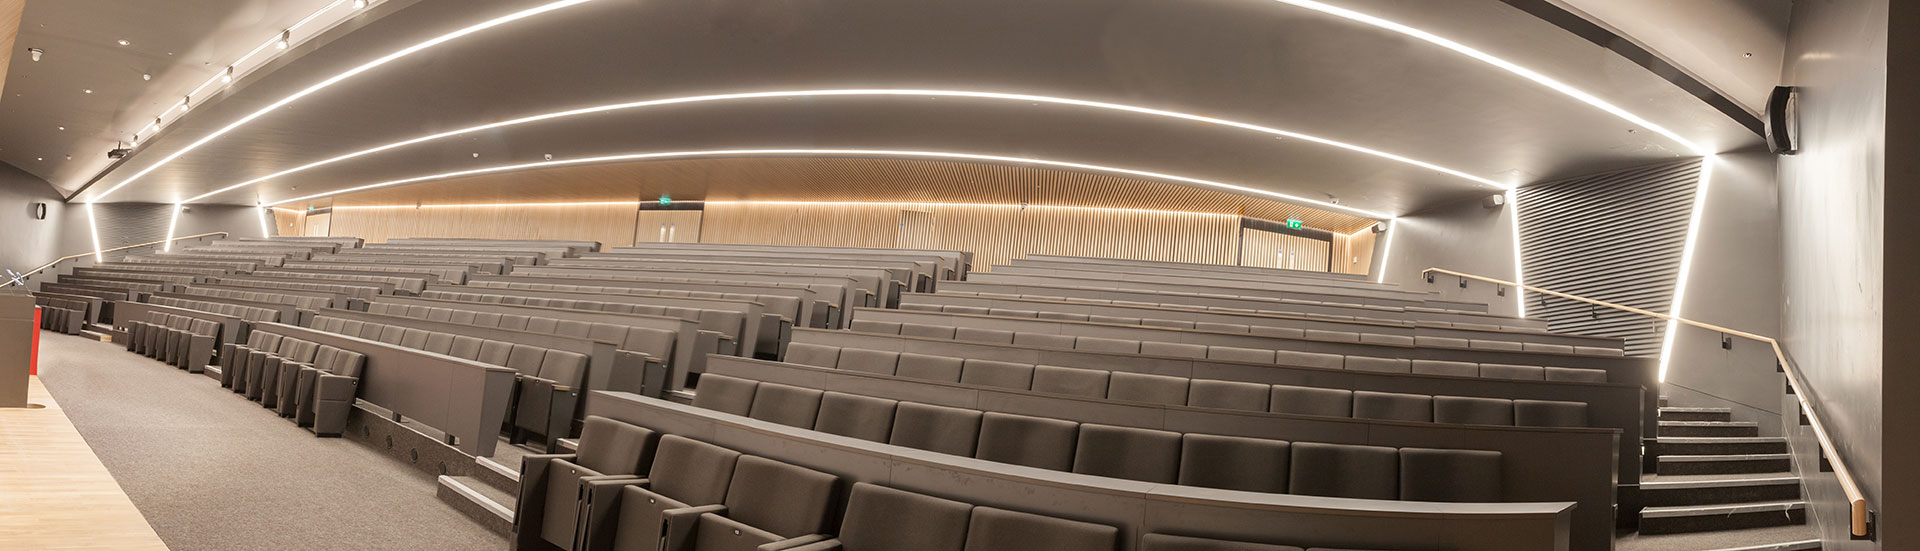 RCSI Auditorium-ECI Lighting